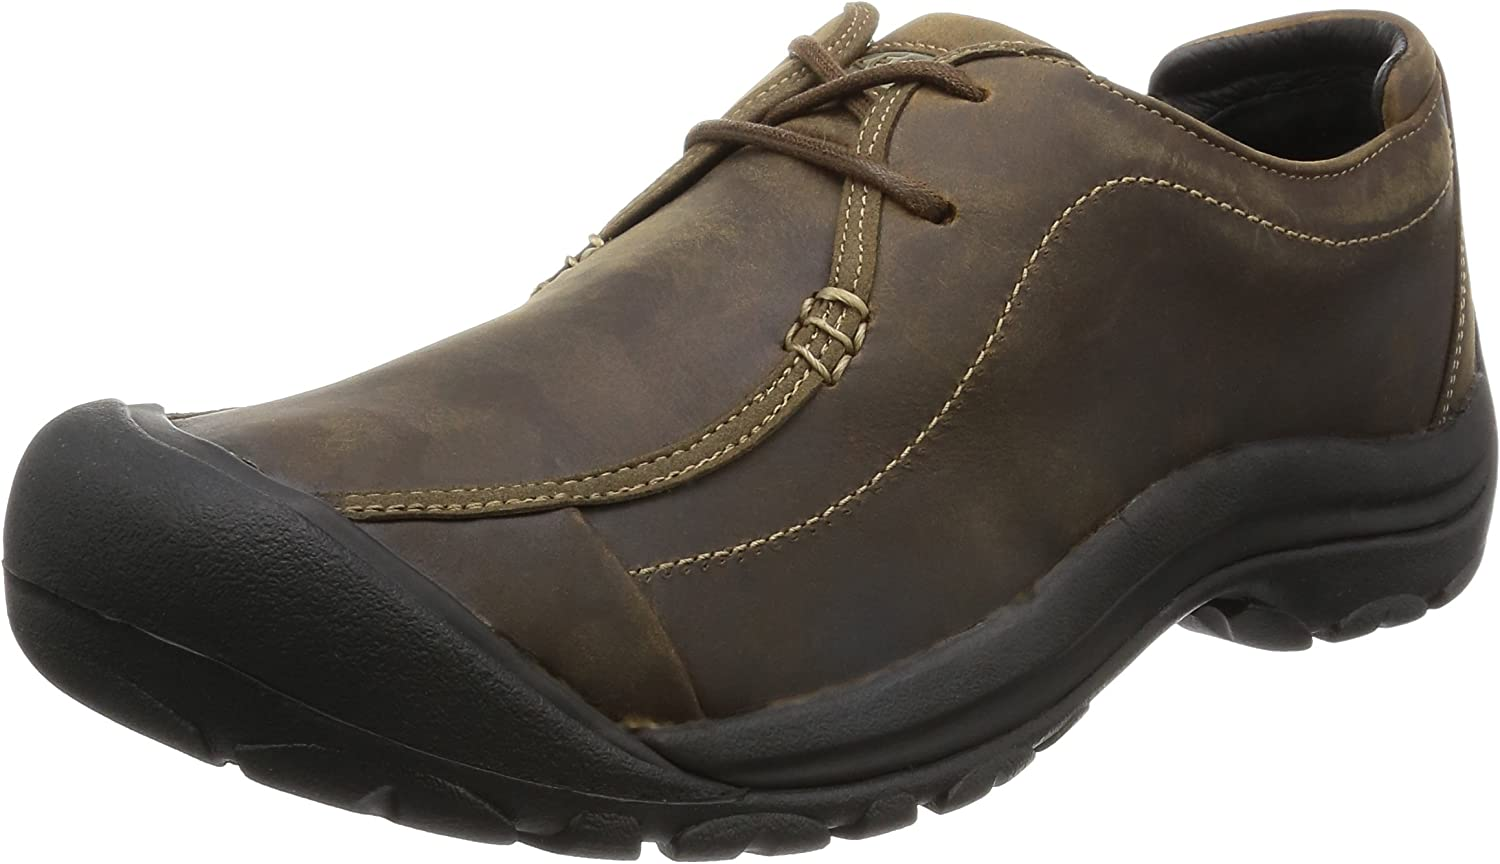 KEEN Men's Portsmouth II Hiking shoes